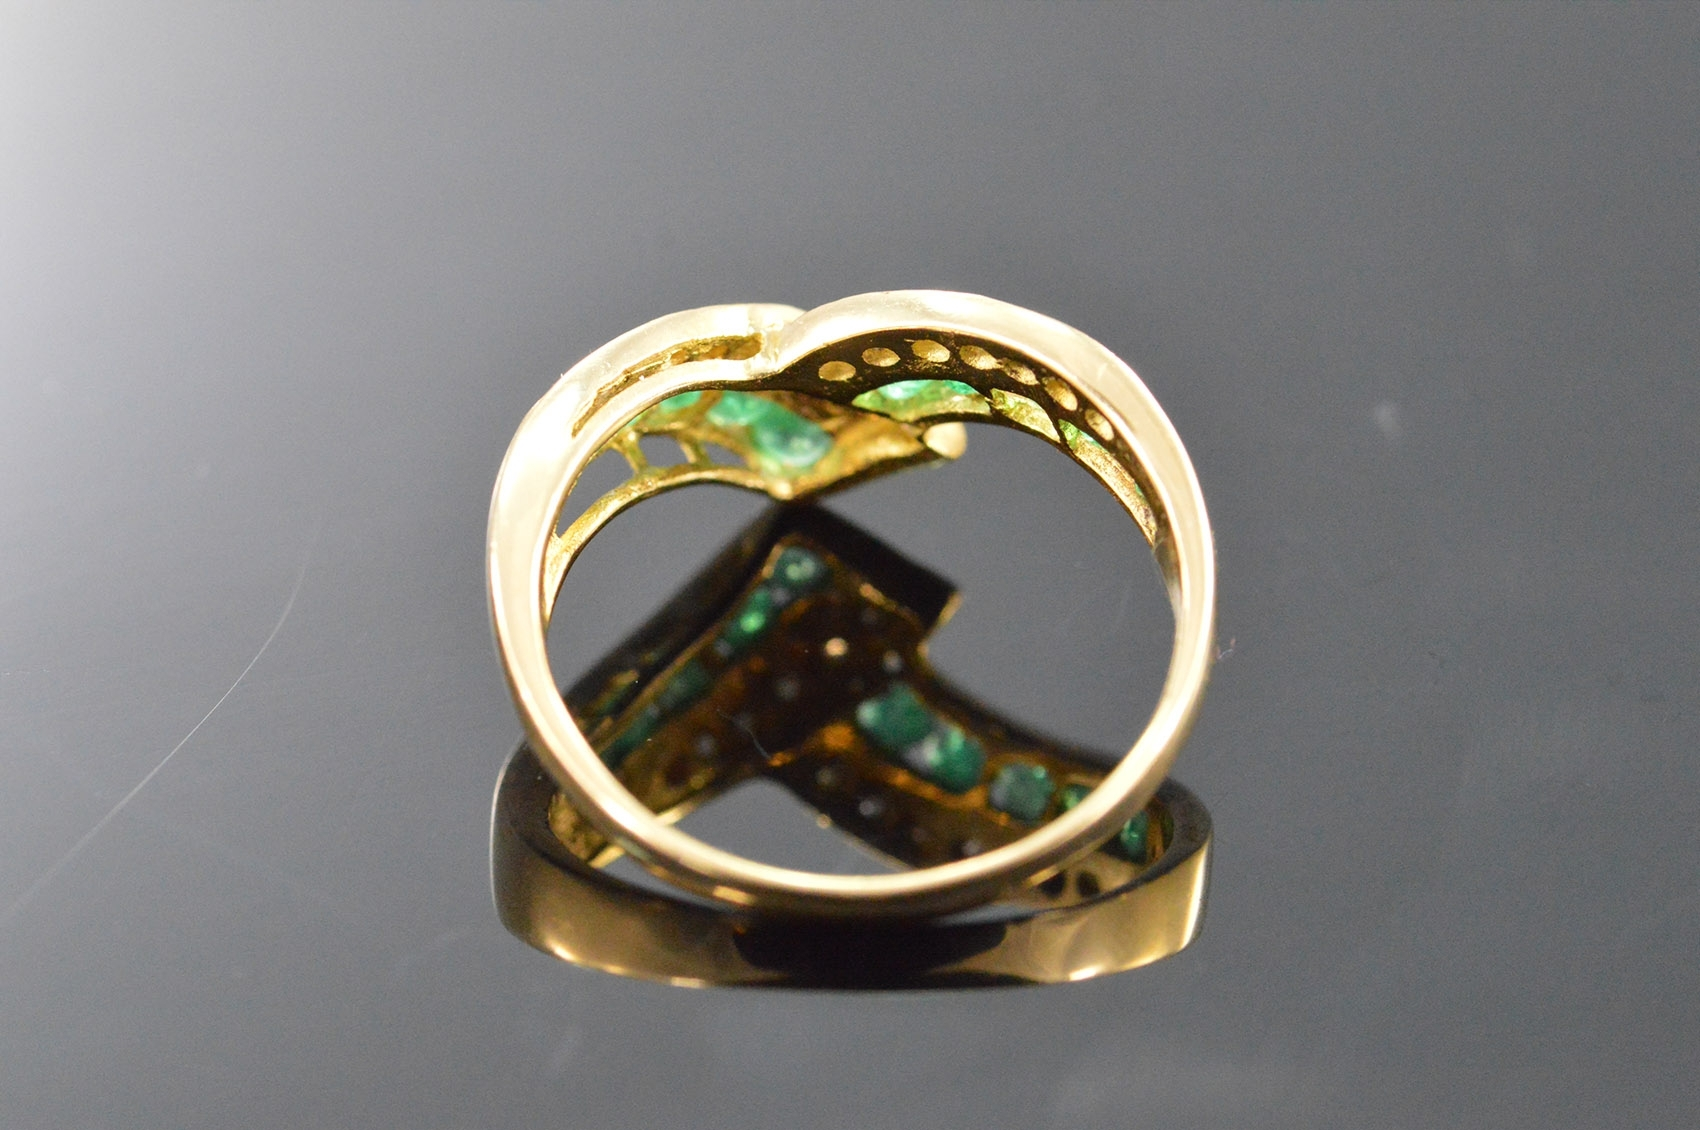 18K 3G 0.31 Ctw Diamond Emerald Chevron Yellow Gold Ring, Size 6 Intended For Most Recent Chevron Emerald Rings (Gallery 10 of 15)